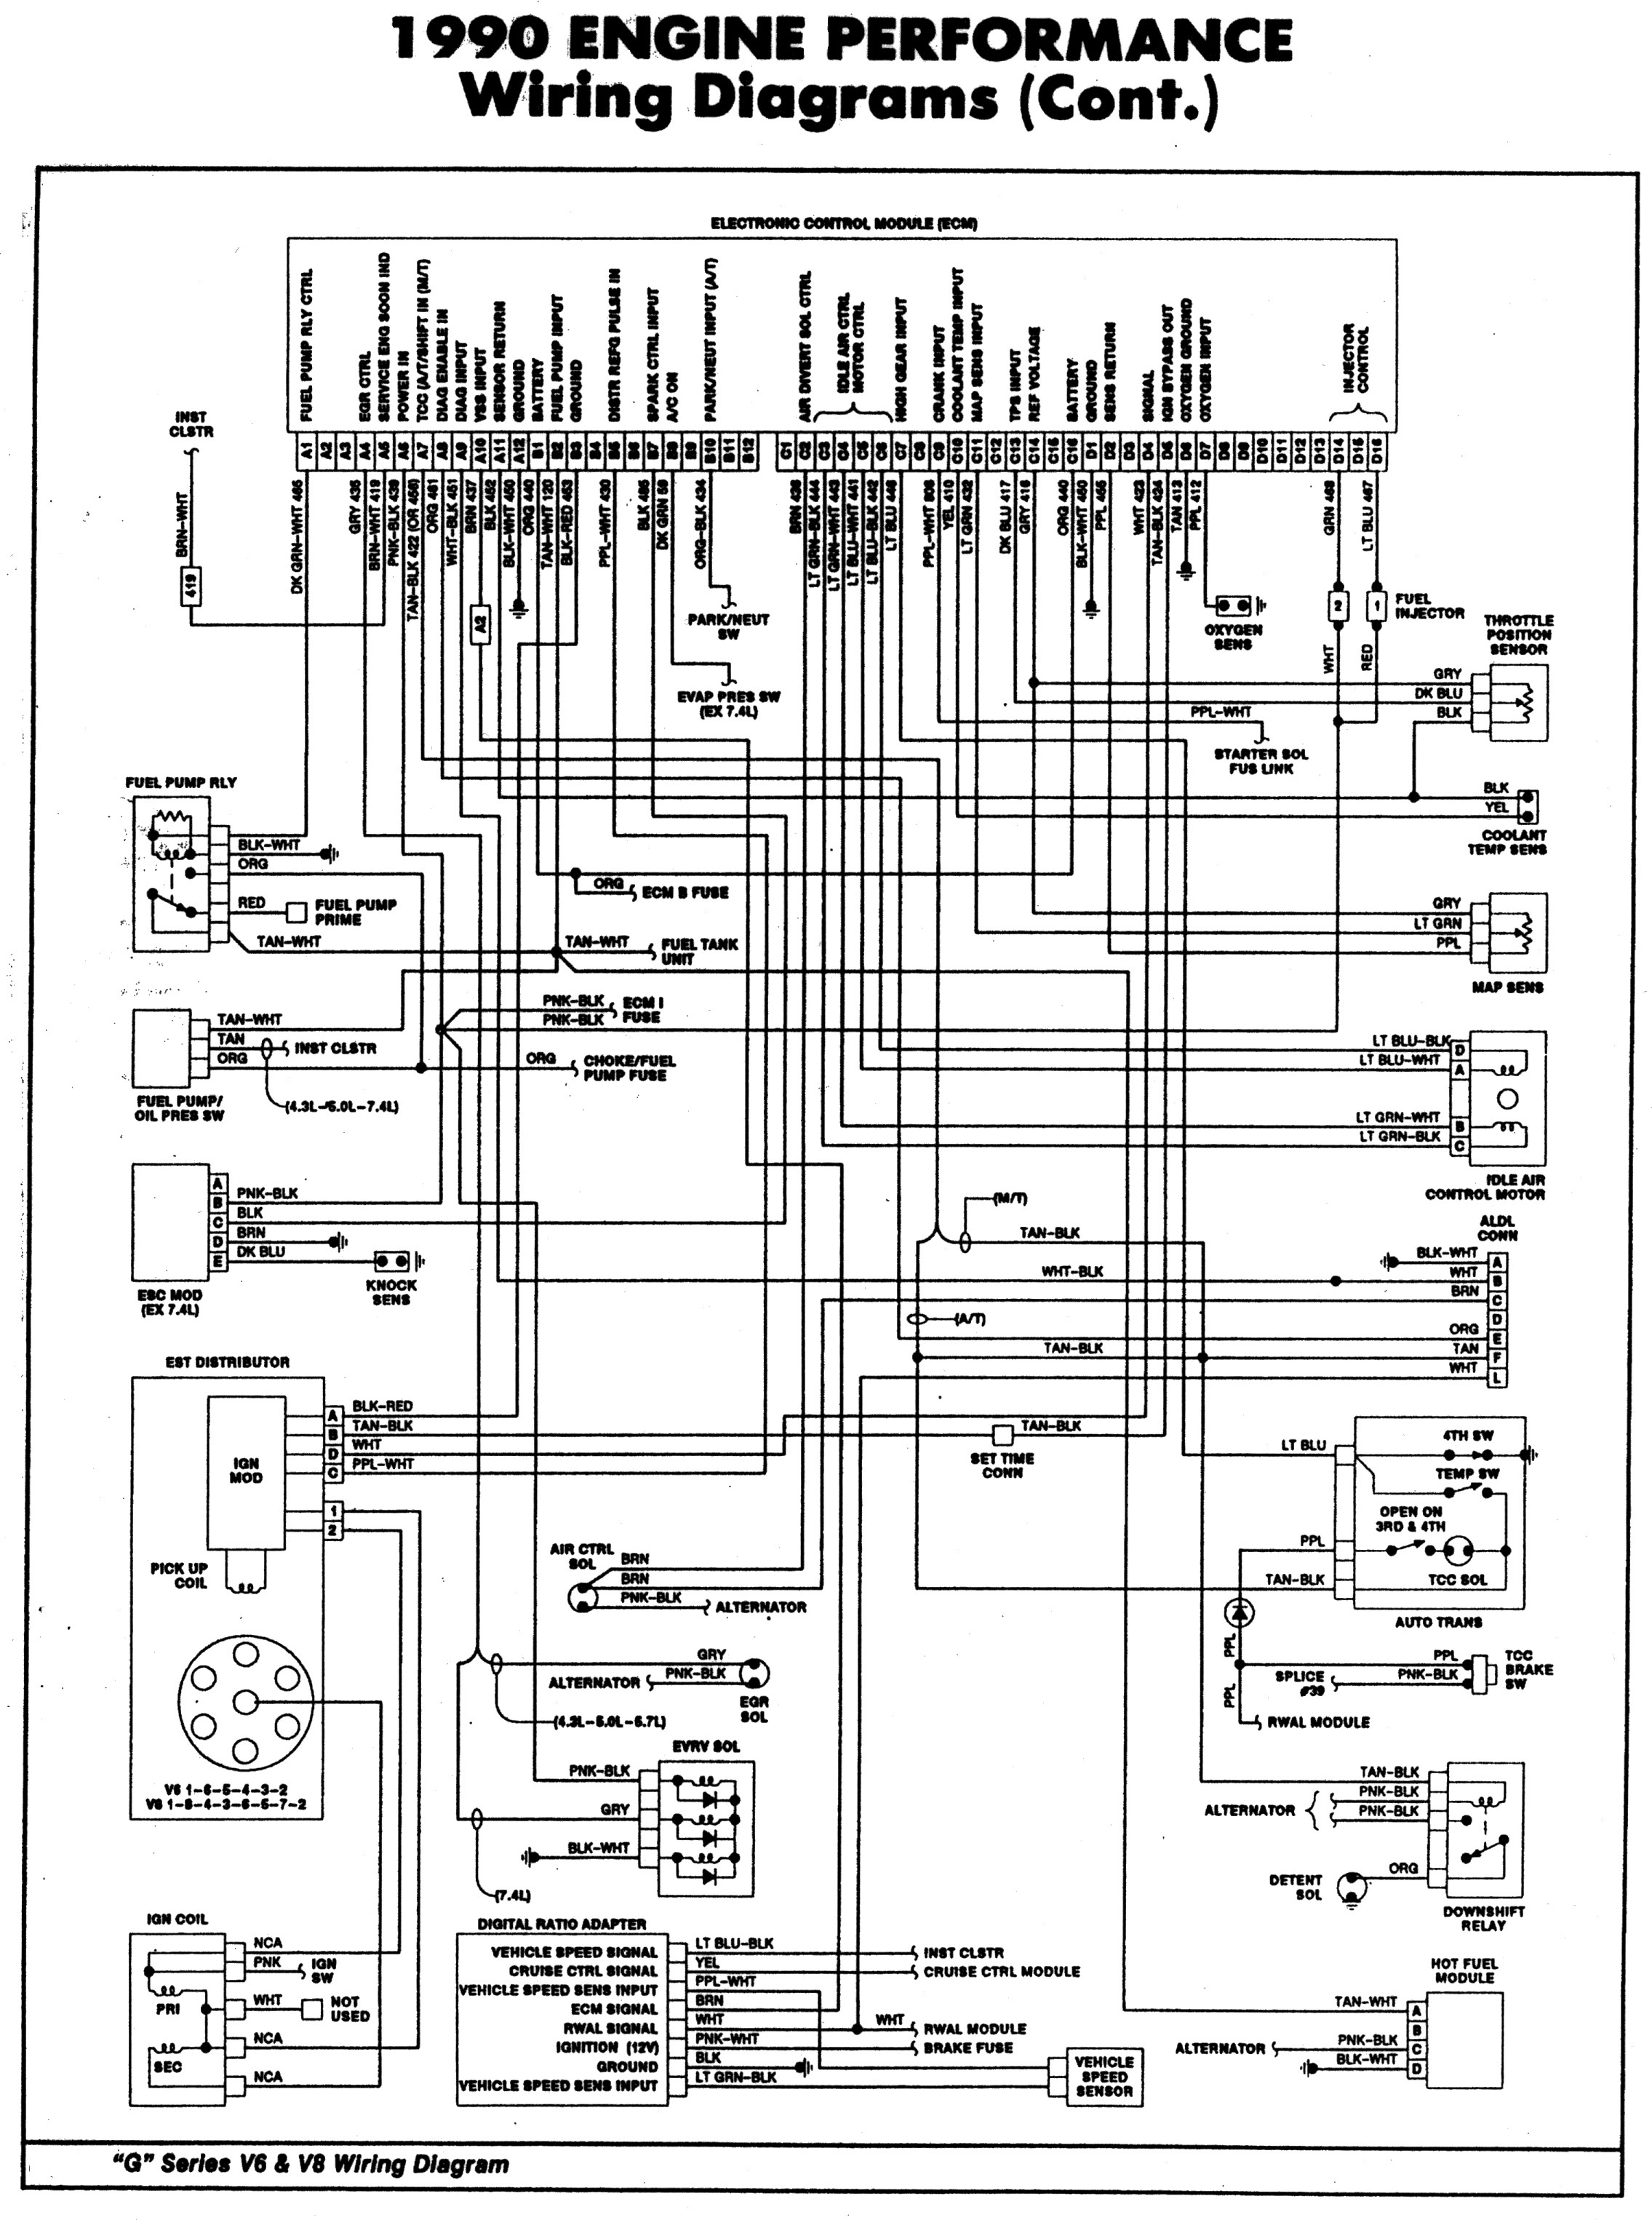 small resolution of 1988 chevy k1500 wiring diagram schema wiring diagram 1988 chevy k1500 tail light wiring diagram 1988 chevy k1500 wiring diagram